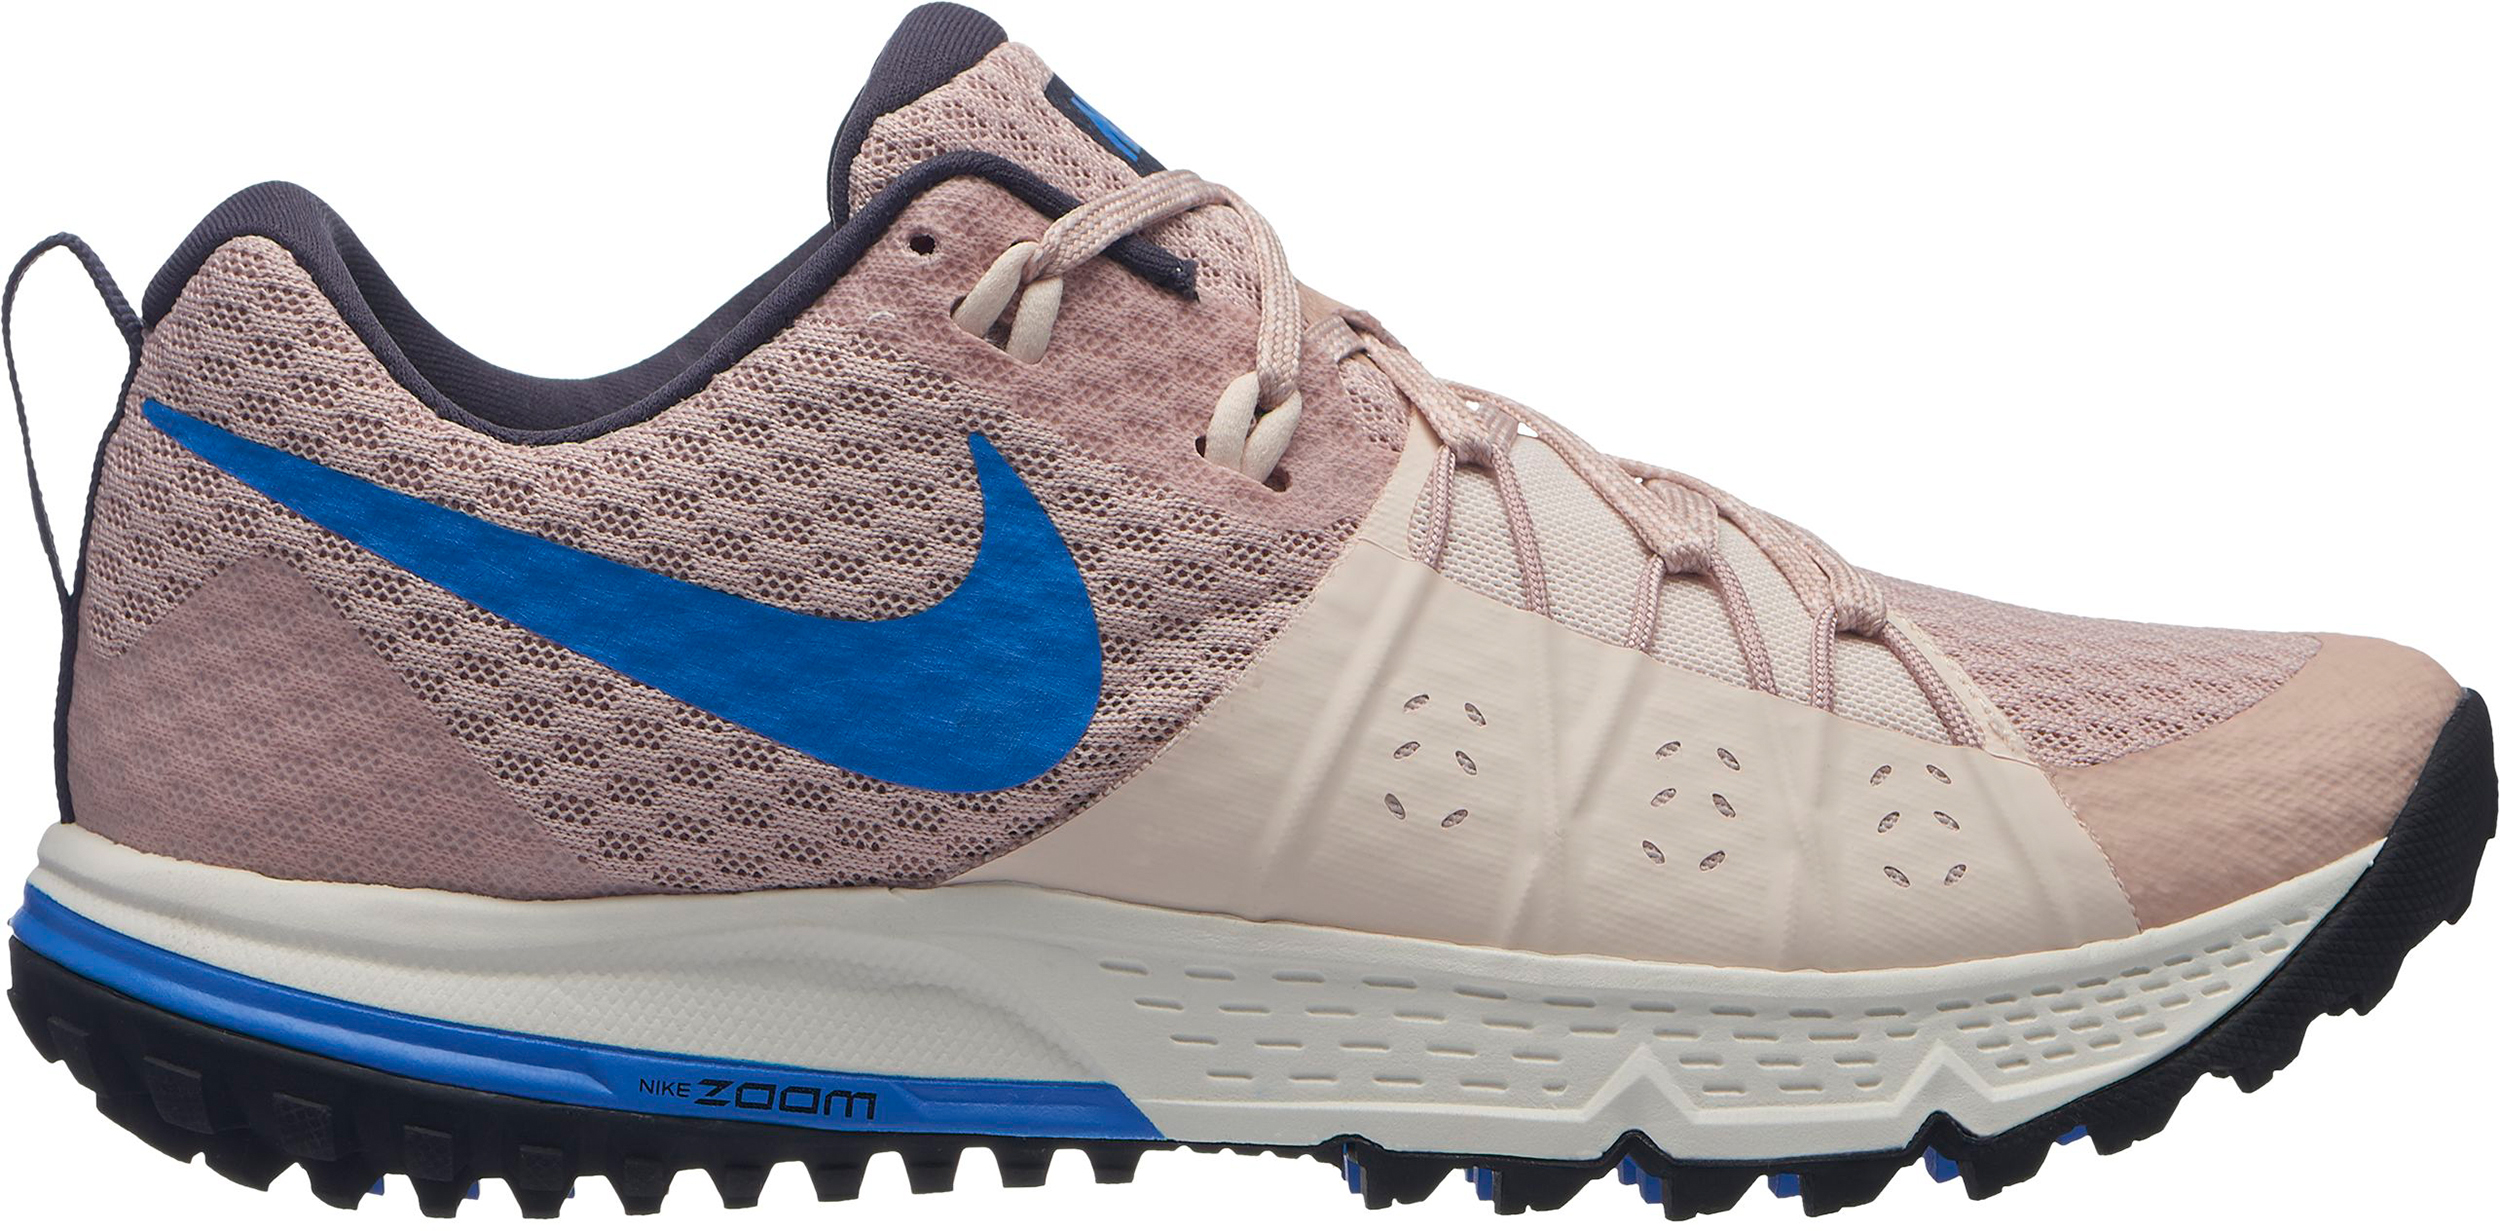 df47ef6a7011c Nike Air Zoom Wildhorse 4 Trail Running Shoes - Women s